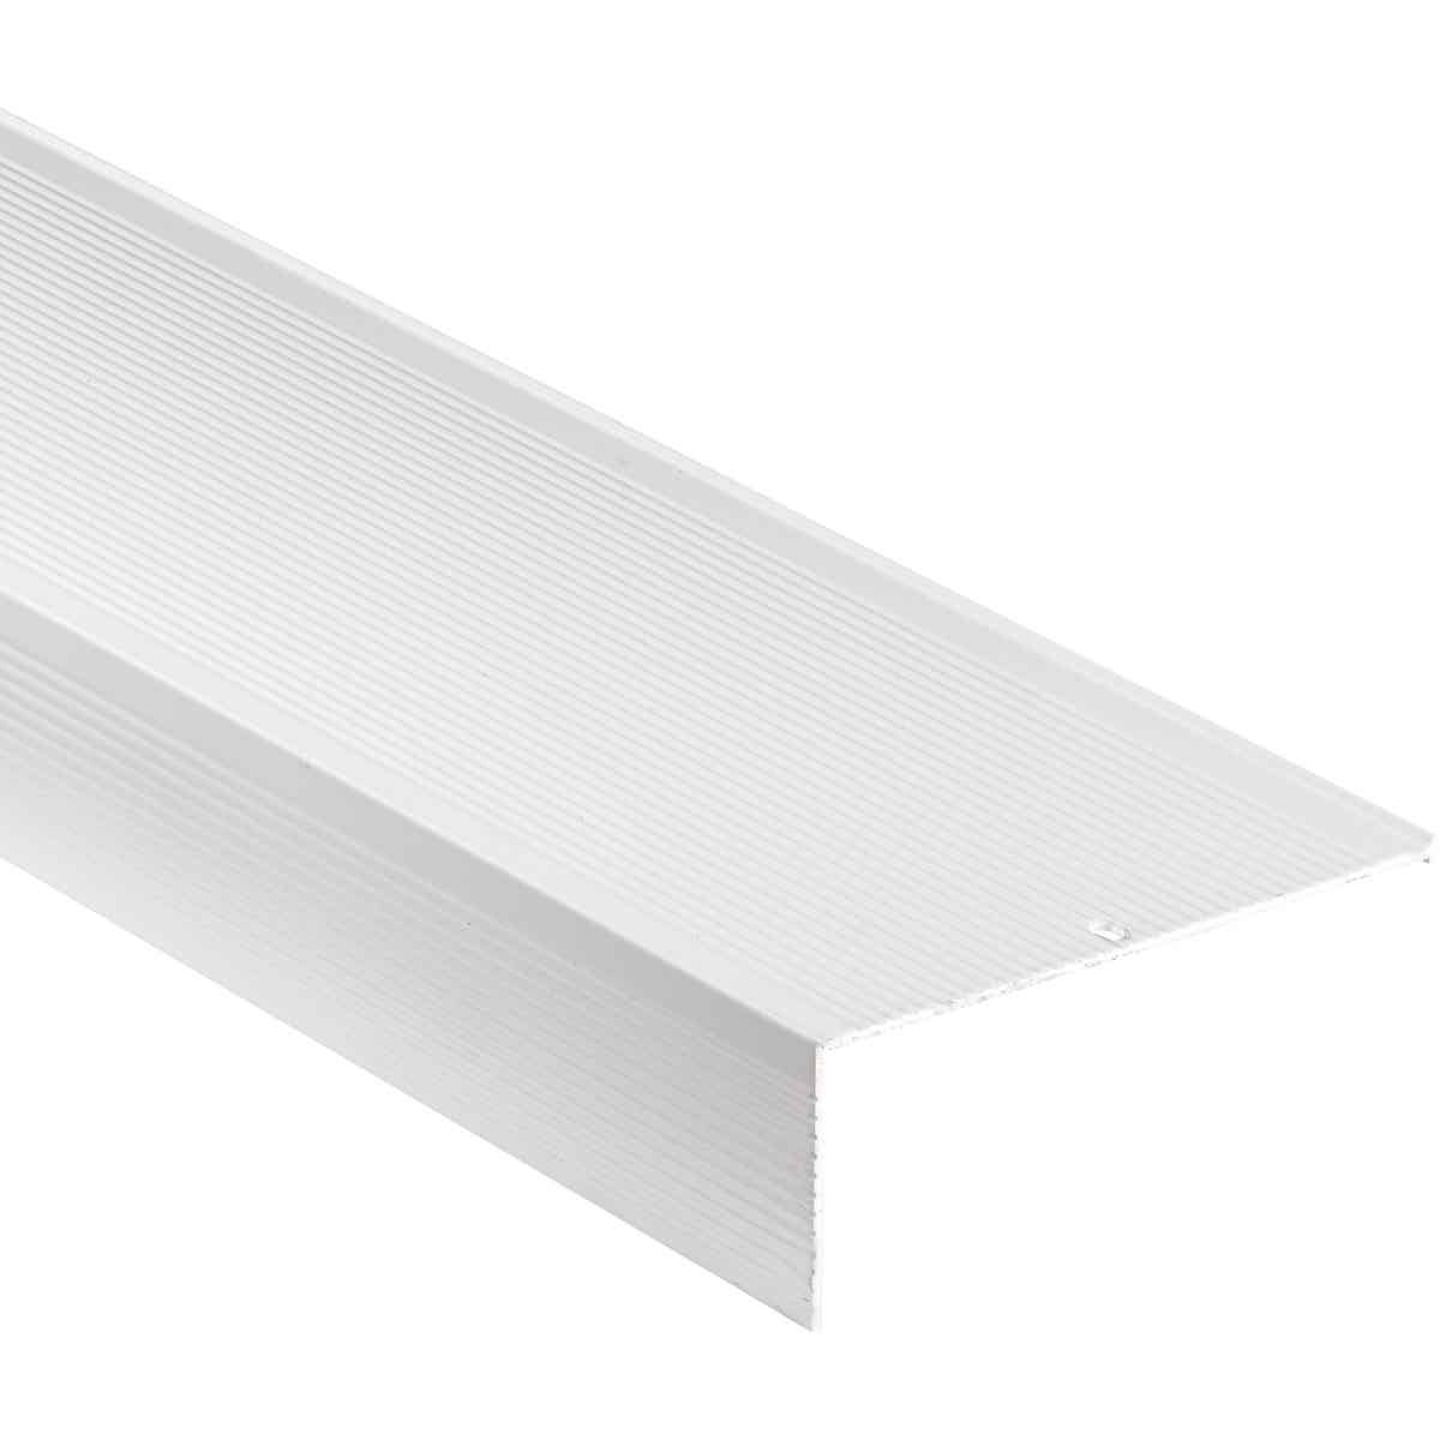 """M-D Ultra White 36"""" x 4-1/2"""" Sill Nosing Image 1"""